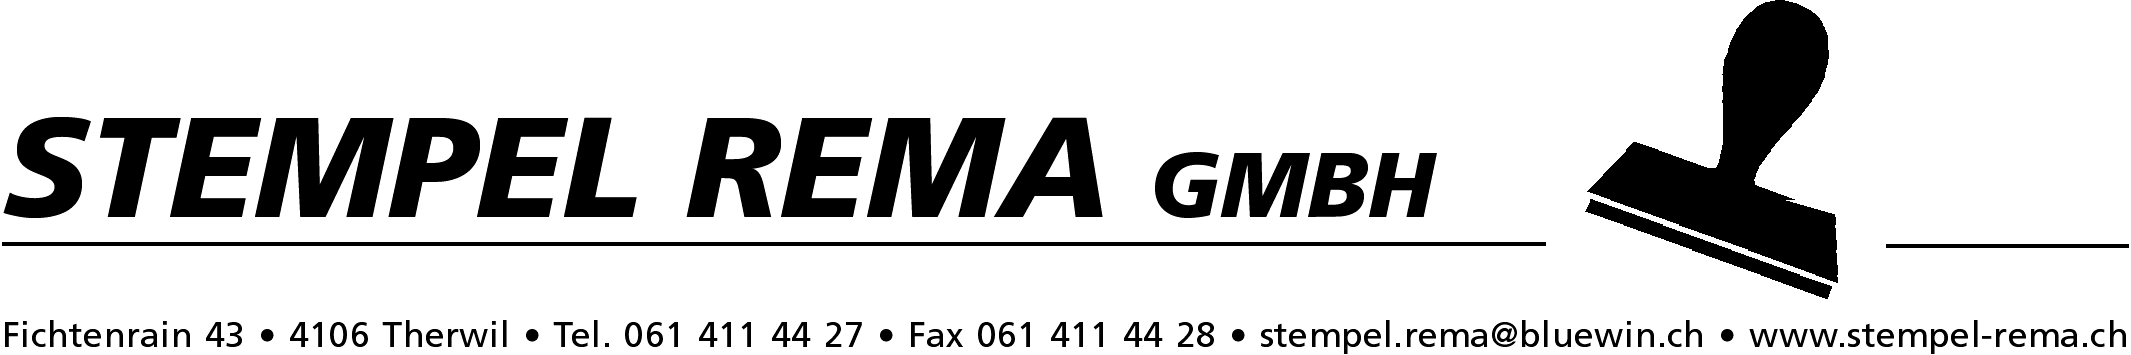 Stamp Rema Ltd.